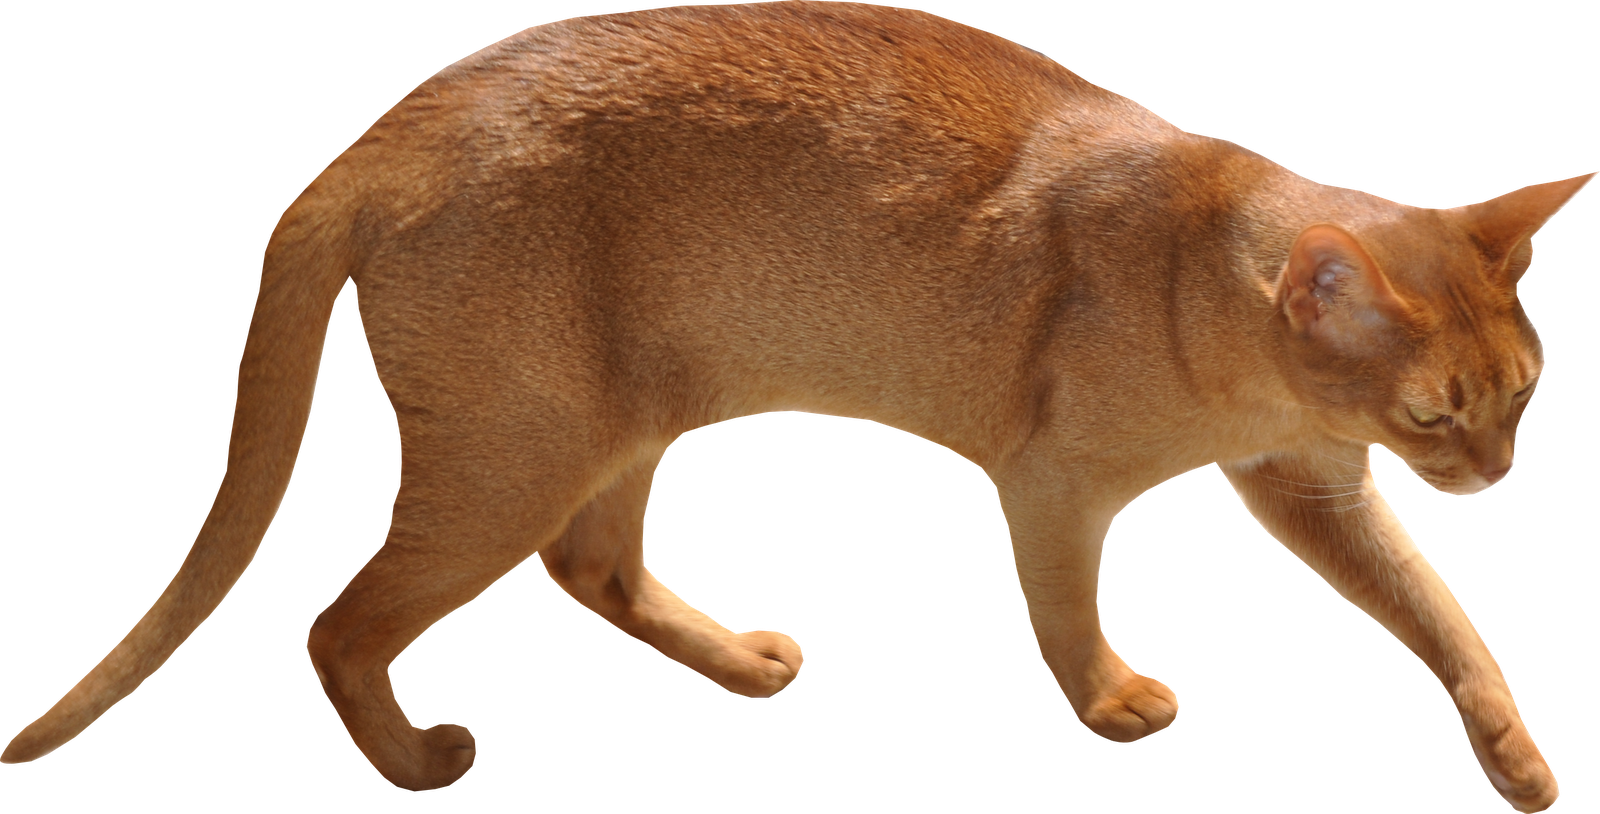 Cat walking png. Free images and arching